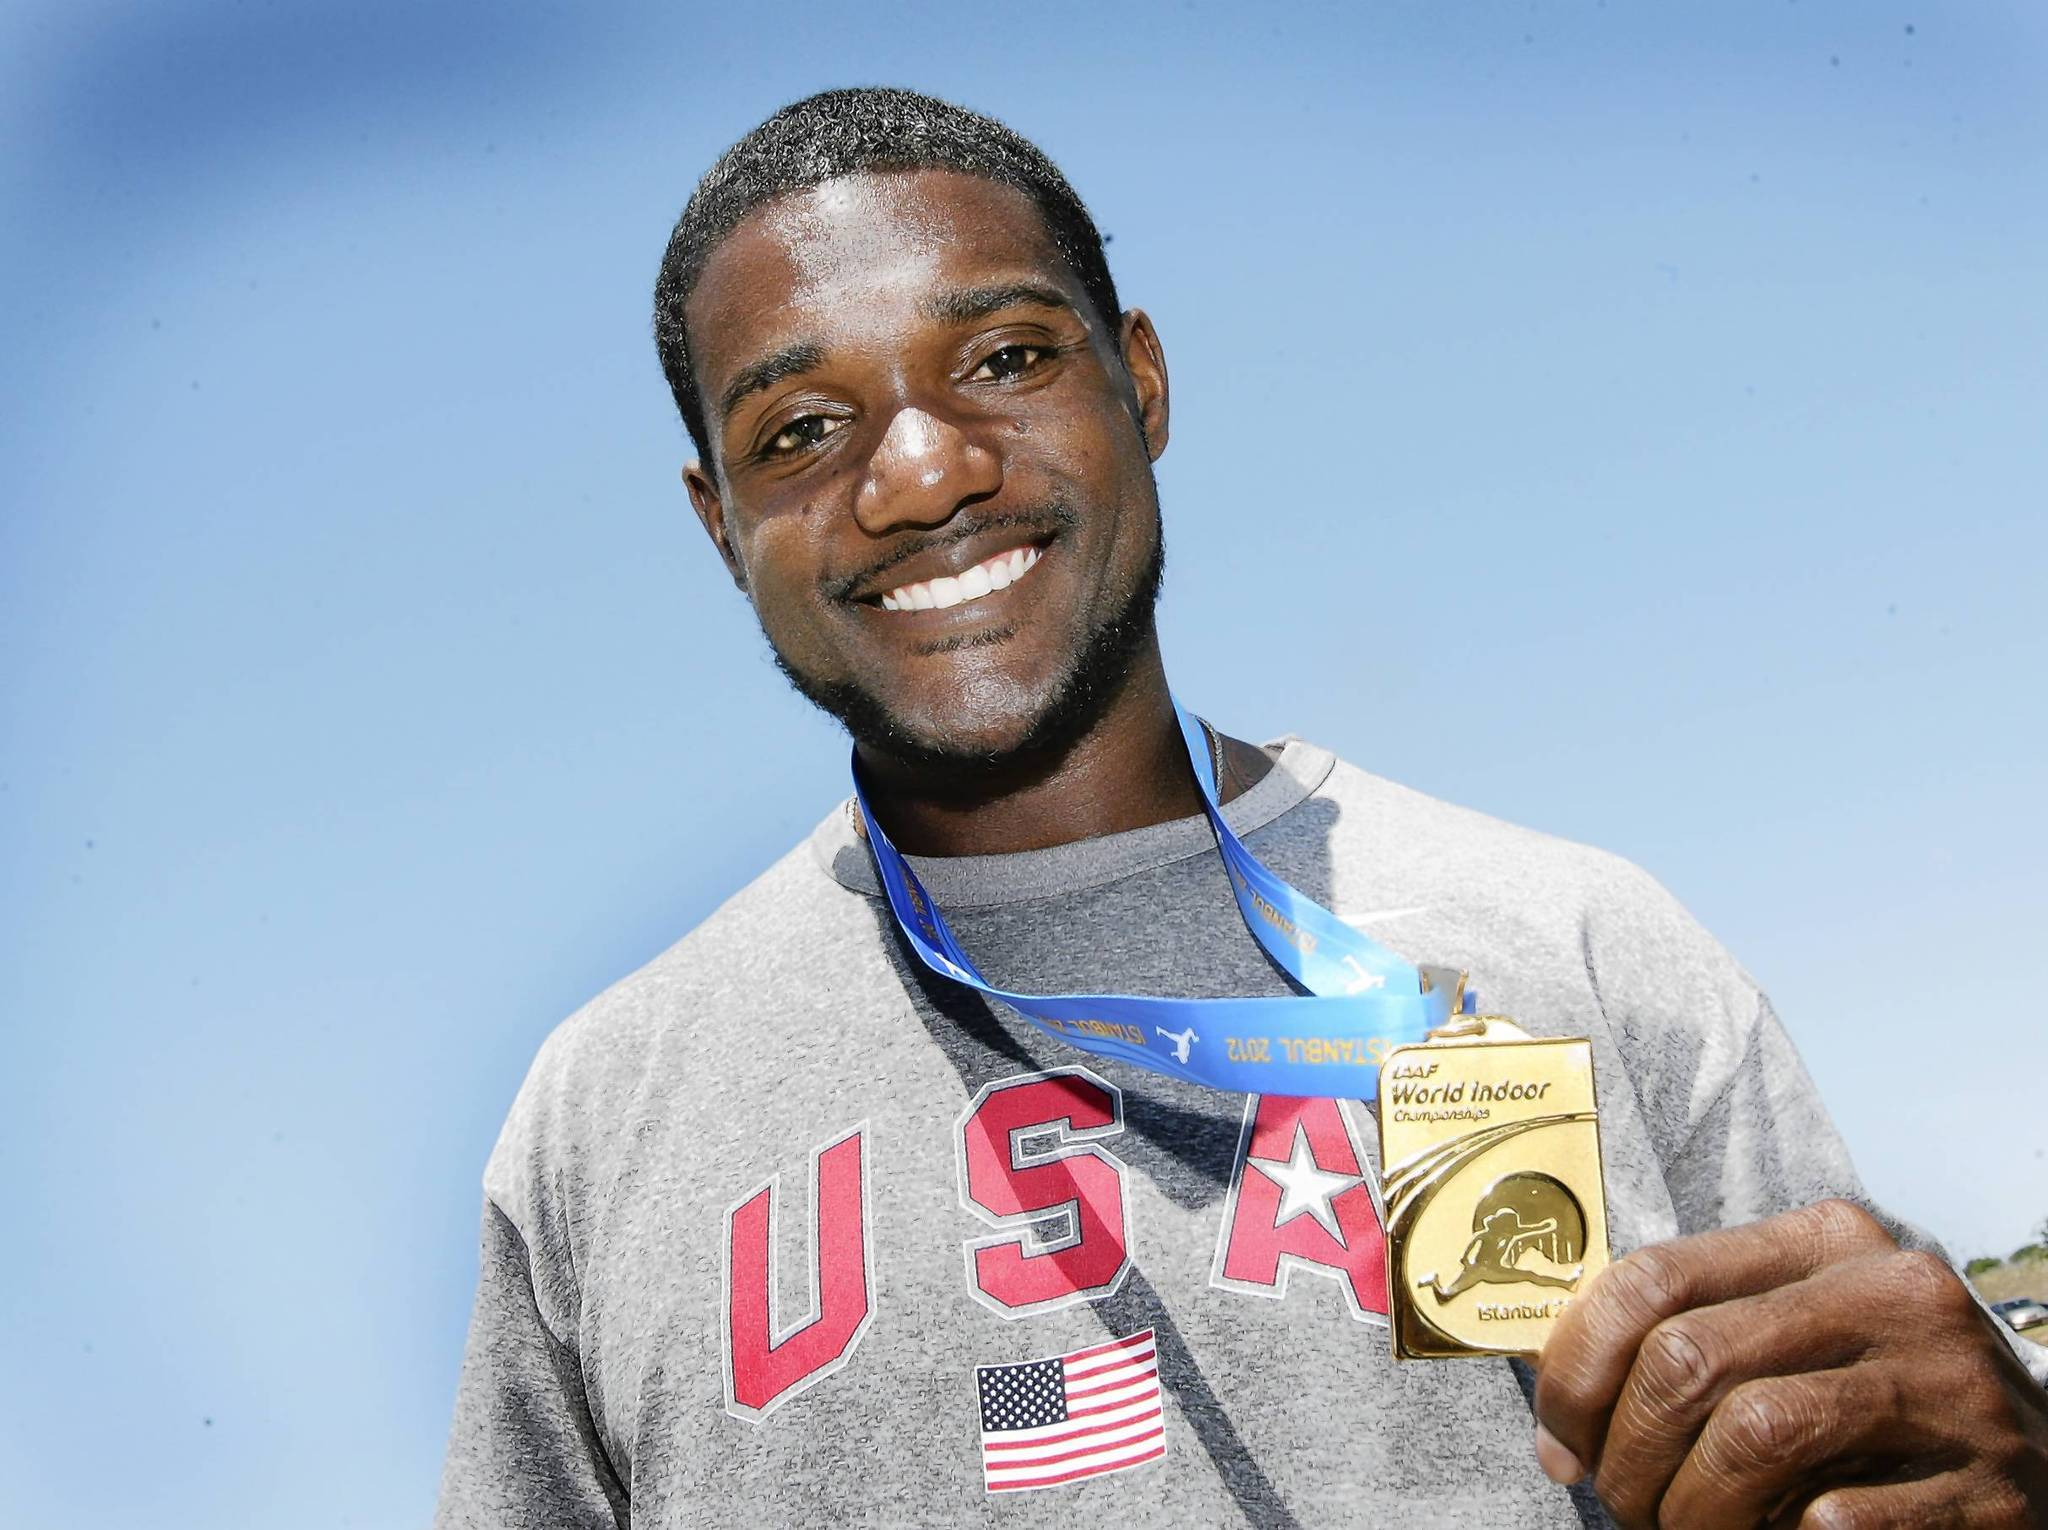 American sprinter Justin Gatlin proudly displays the Gold he won this year in the World Indoor Championships in Istanbul .Twenty five Olympic athletes, training in Clermont, were introduced during a media day at the National Training Center on Friday, April 25, 2012. Earlier his month , Gatlin ran a 9.87 in Doha, Quatar, to beat 100 meter World record holder Asafa Powell in the Diamond League season opener.